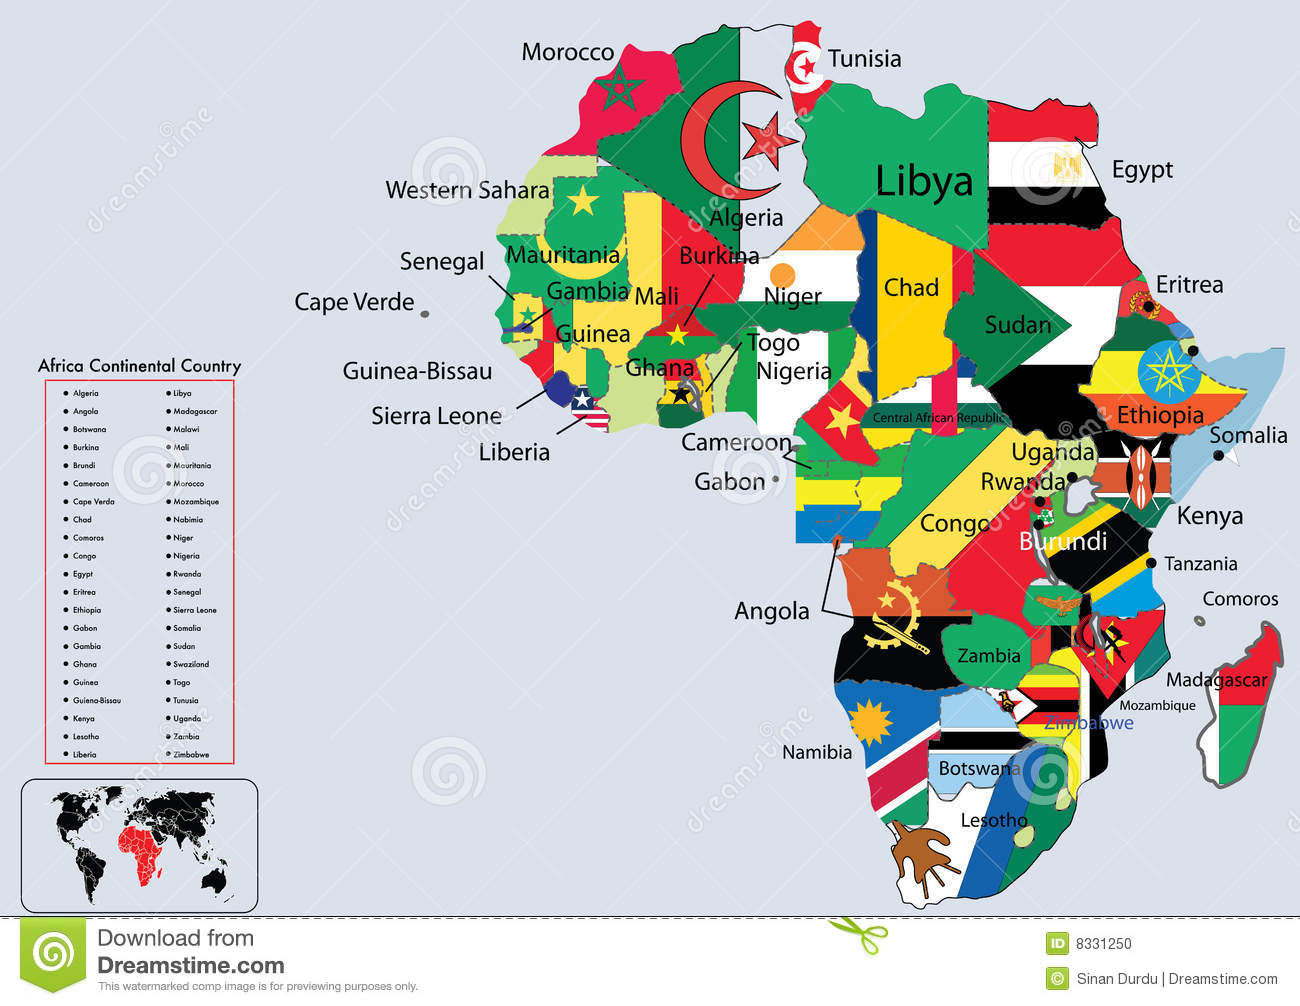 Map Of Africa With Flags.Africa Continental Country Flags And Map Stock Vector Illustration